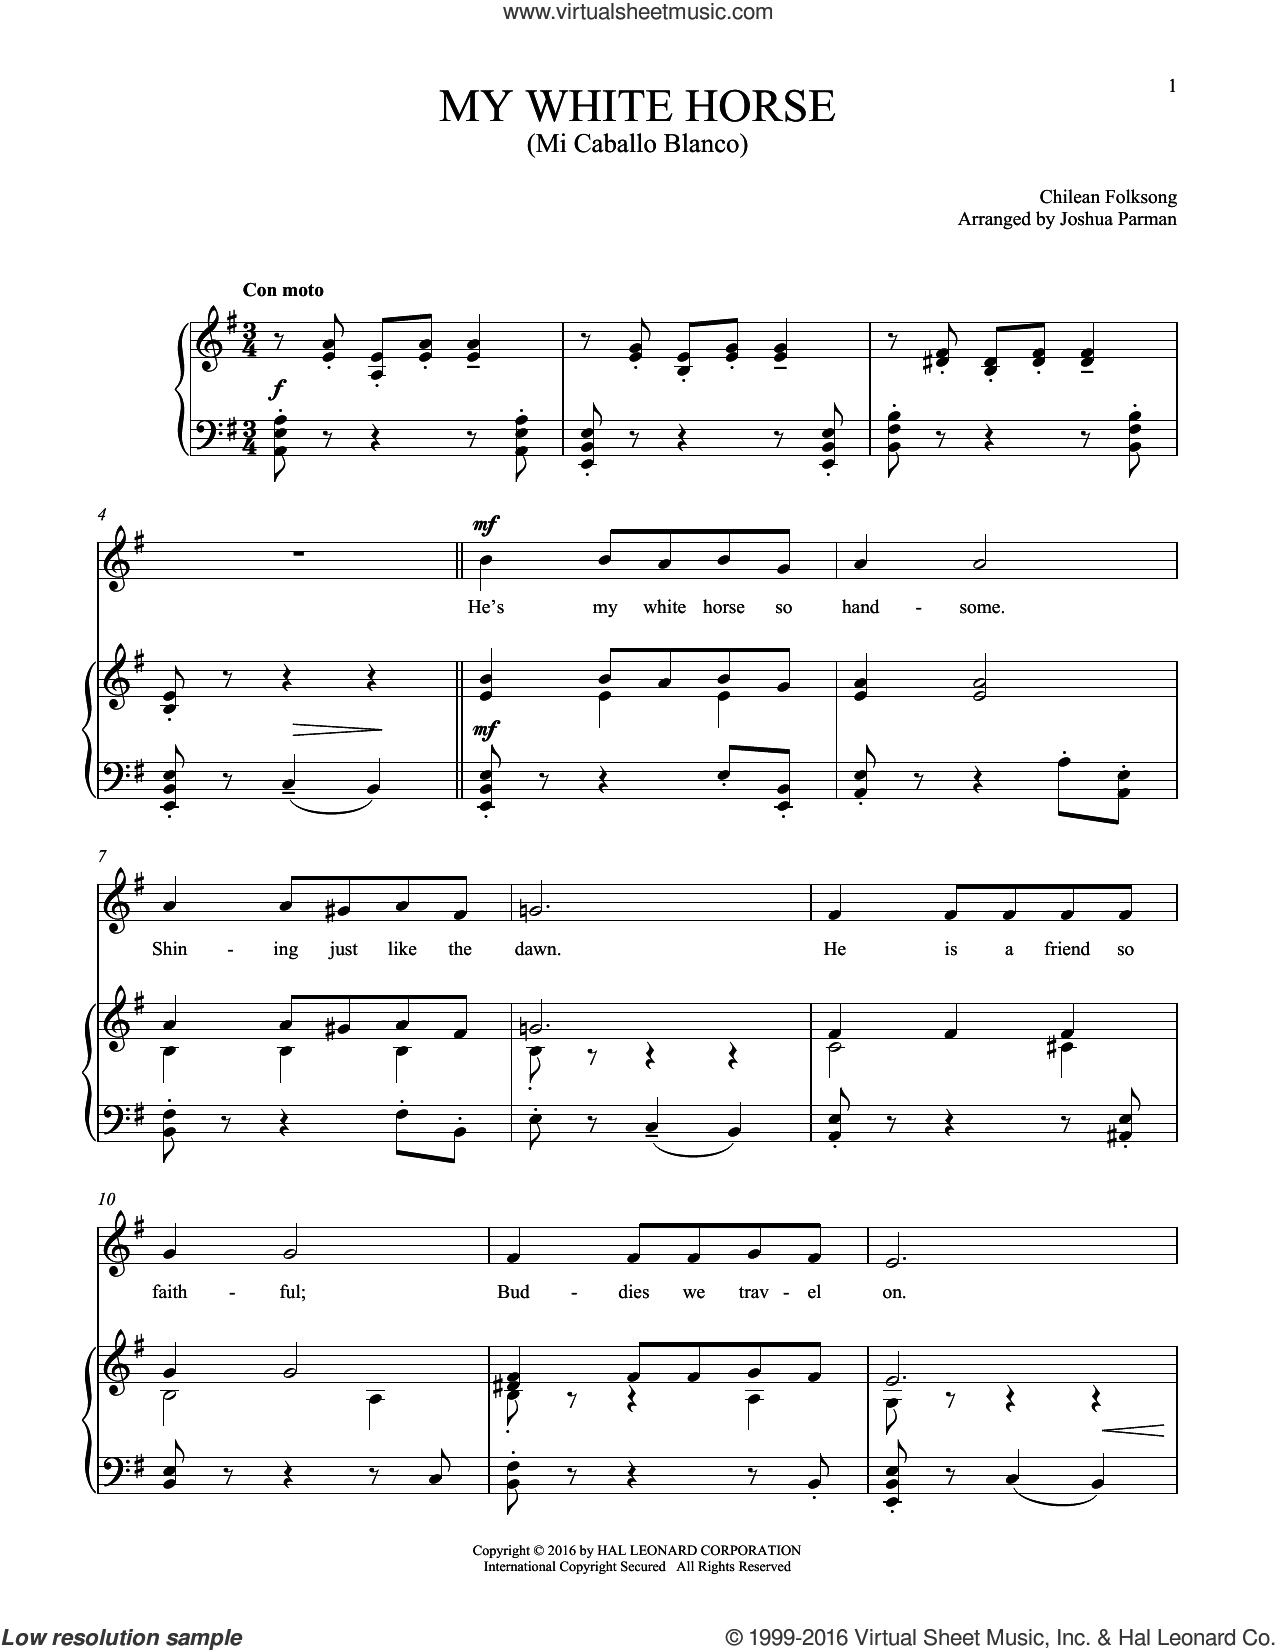 Mi Caballo Blanco (My White Horse) sheet music for voice and piano, intermediate skill level